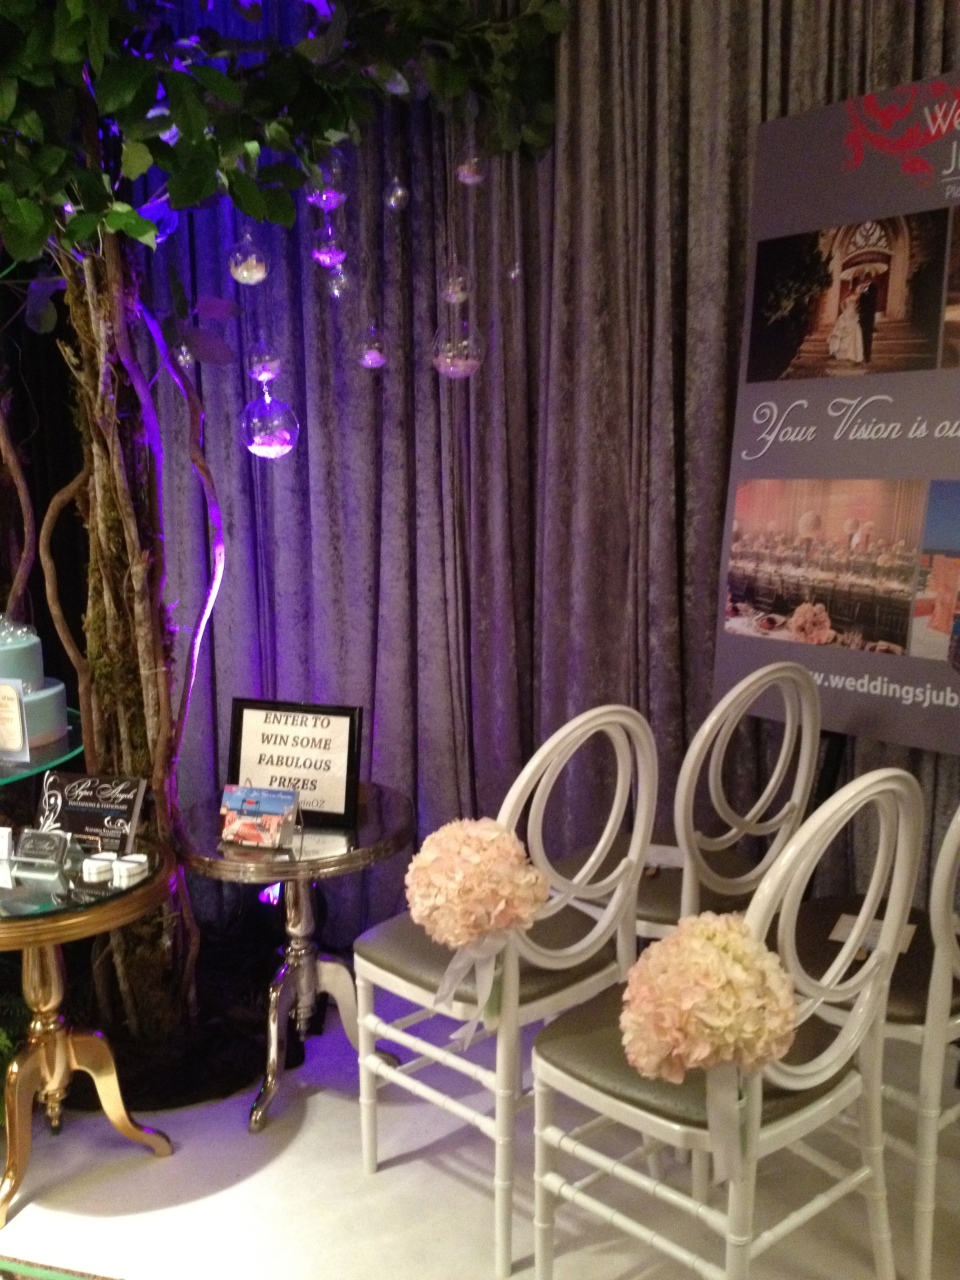 Wedding in Oz ceremony booth